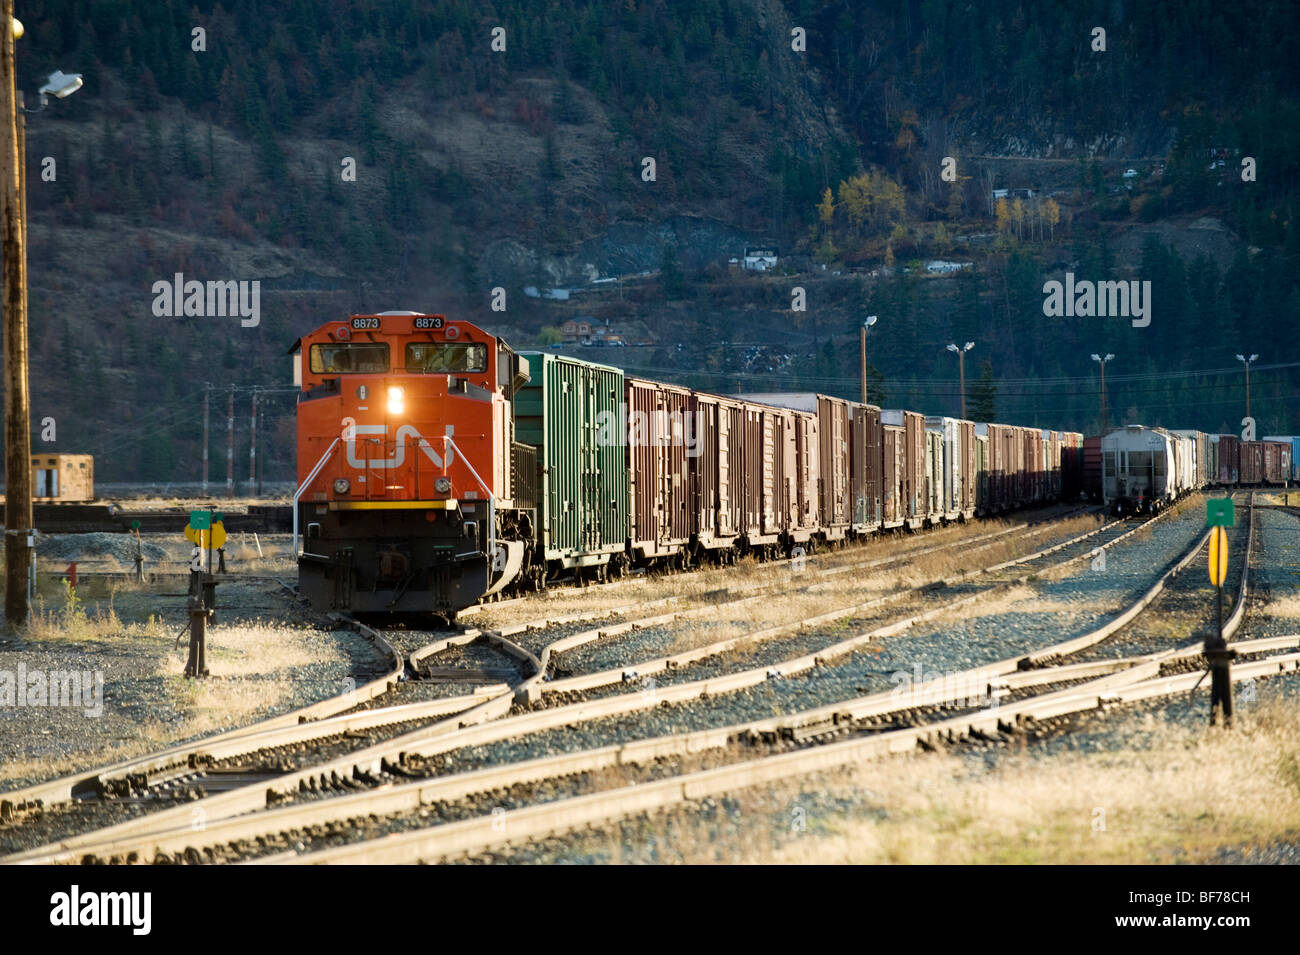 CN train yard. Lillooet BC, Canada. Freight train switching tracks - Stock Image